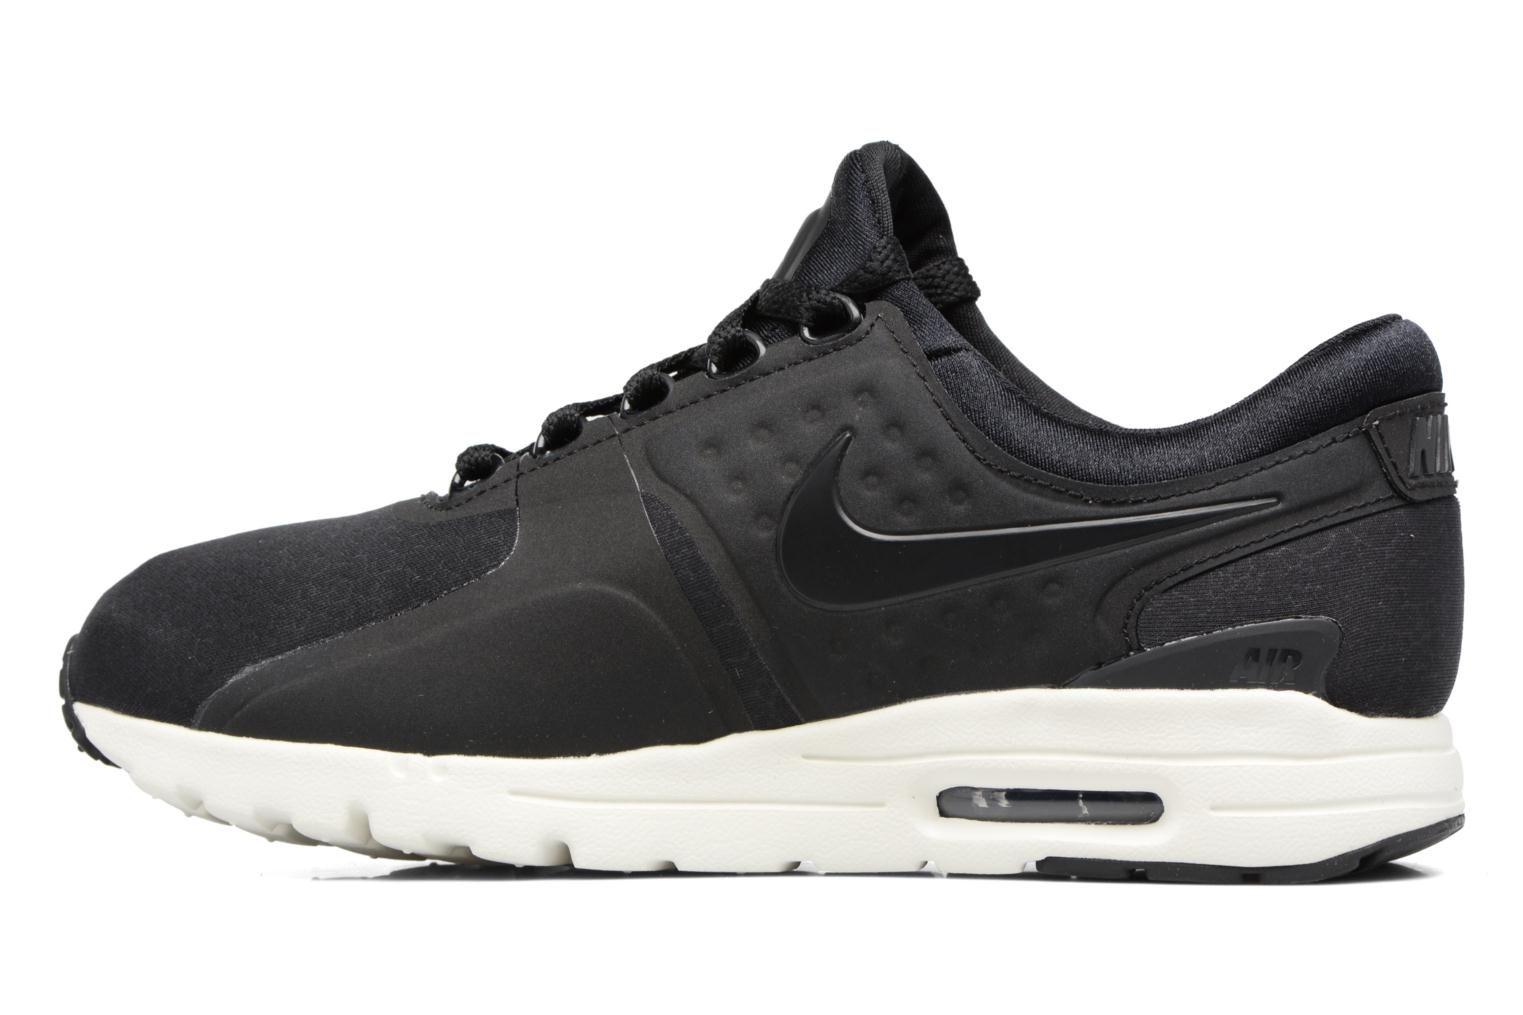 W Air Max Zero Prm Black/Black-Sail-Dark Grey